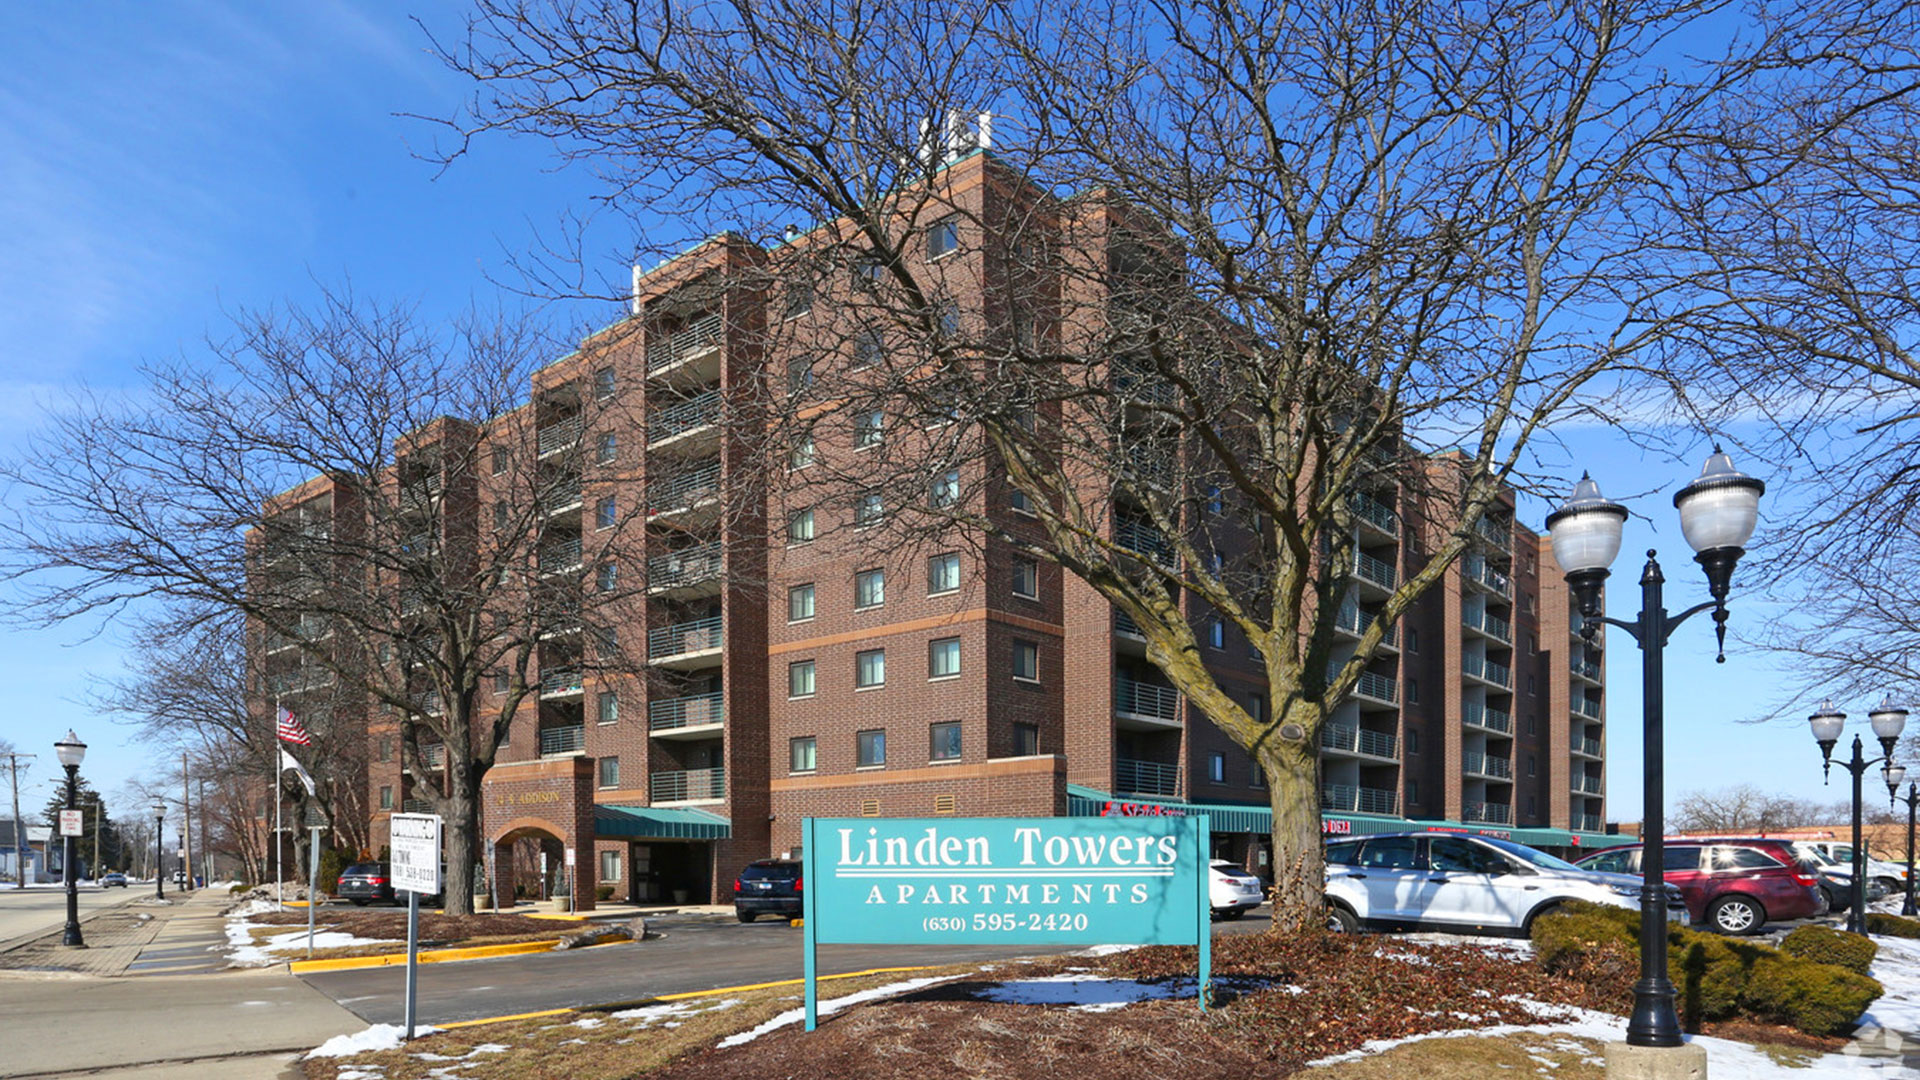 Linden Towers